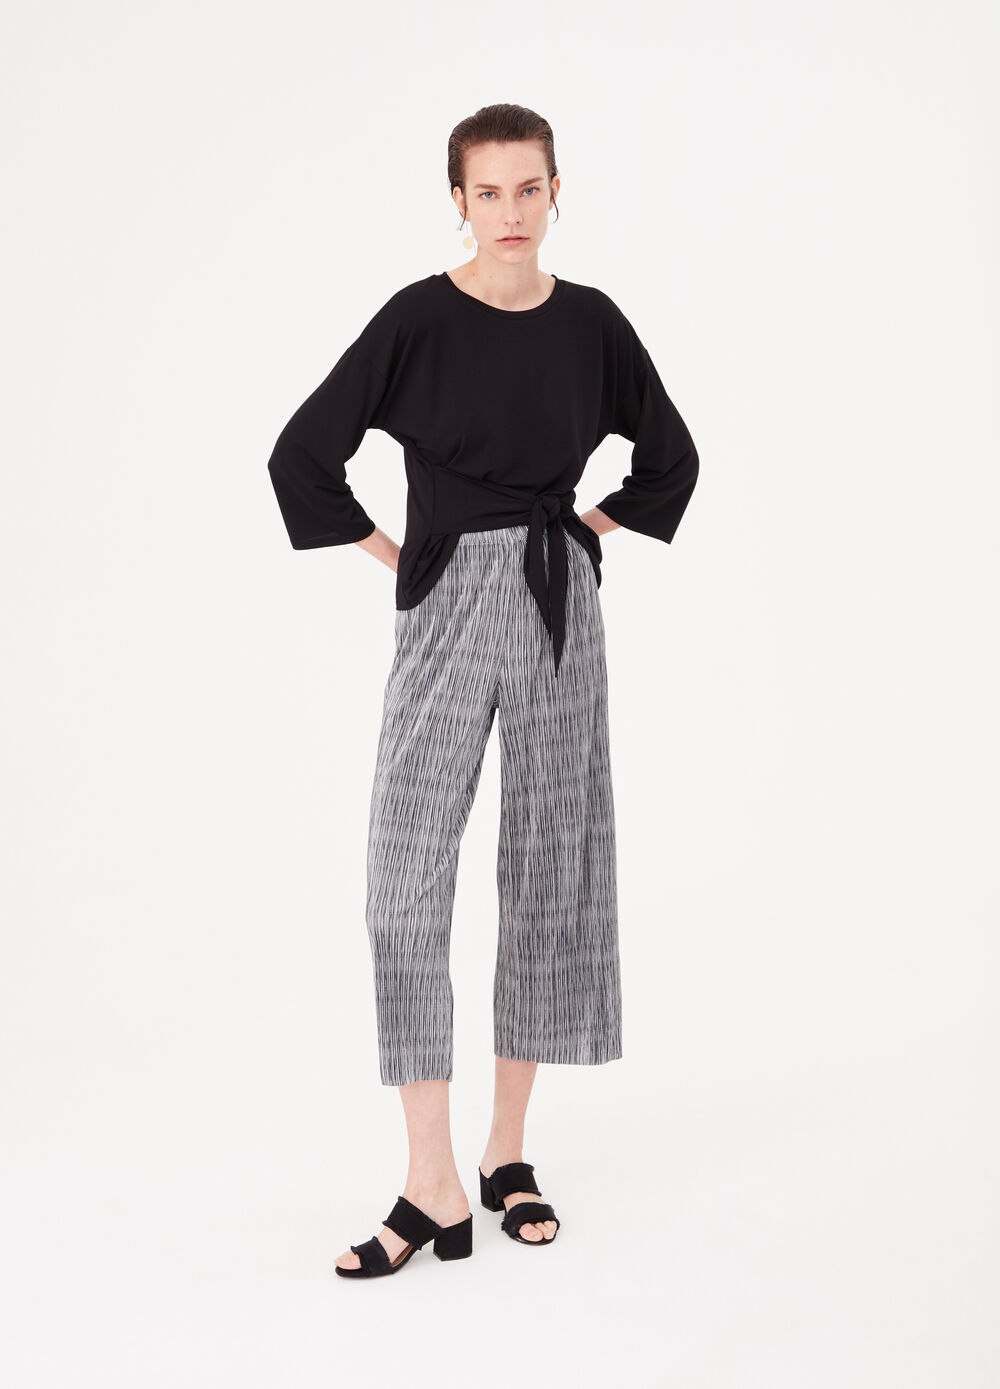 Culotte trousers with contrasting pattern